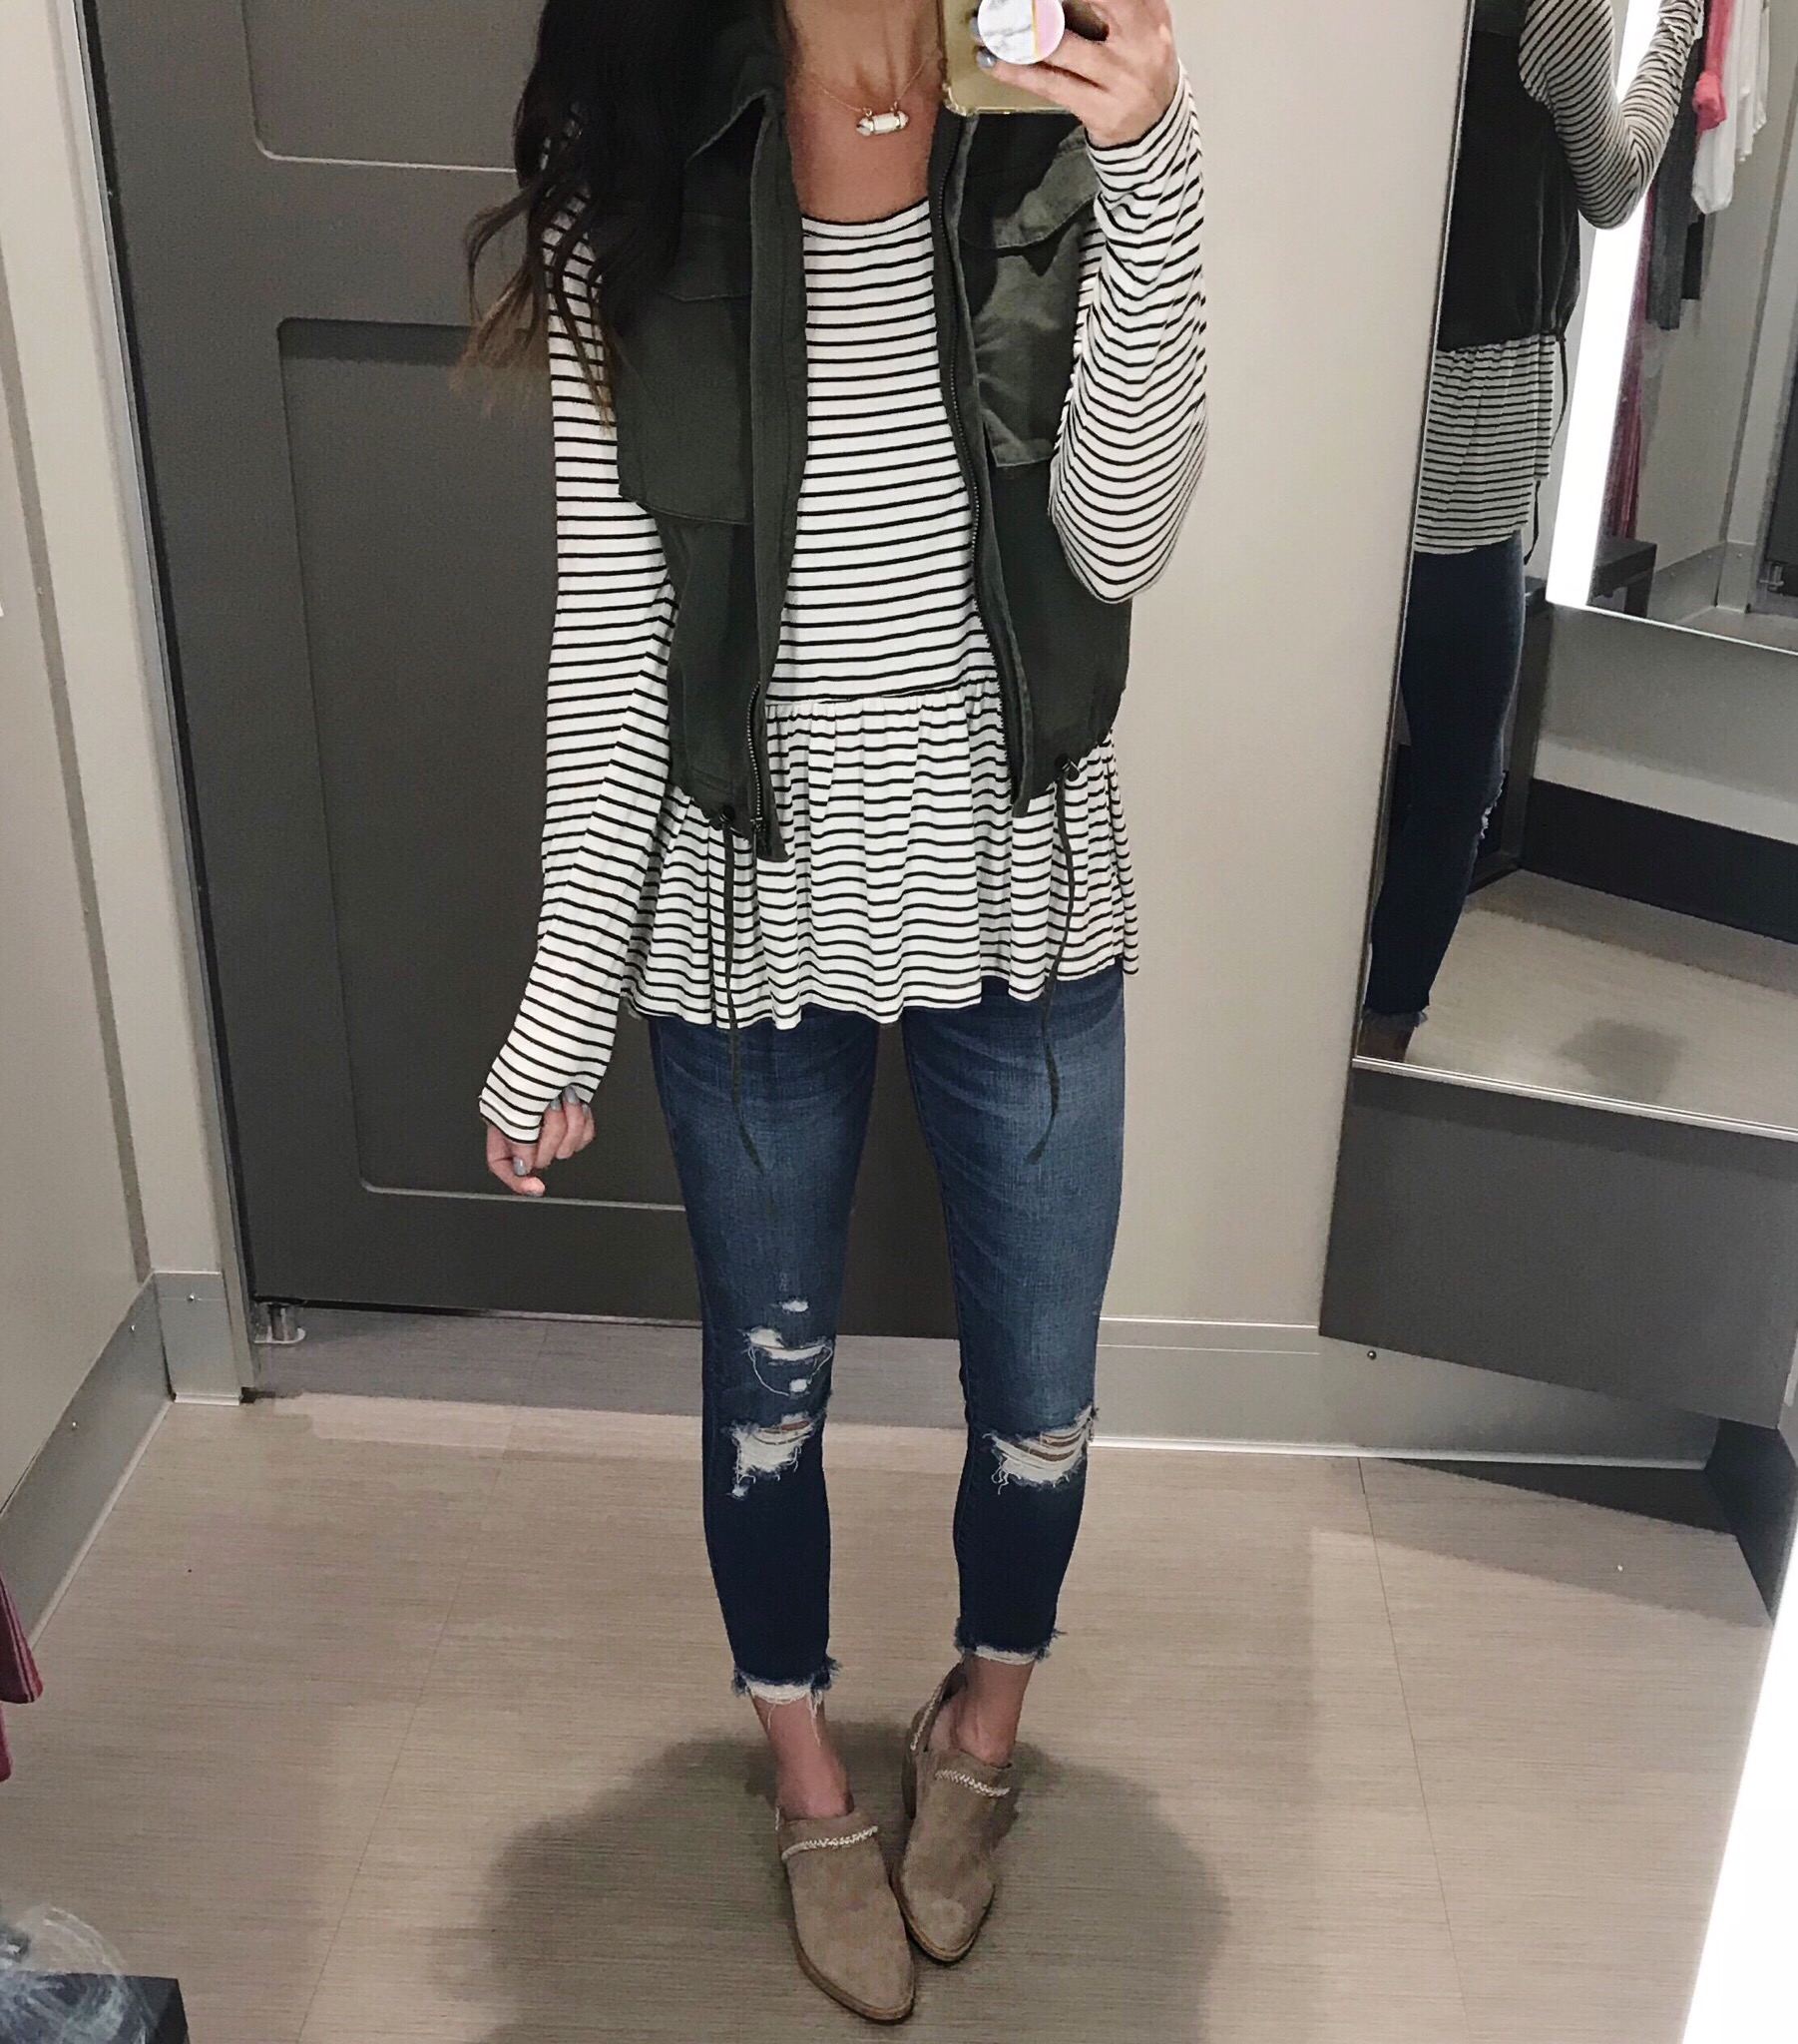 Vest, top, jeans, and booties